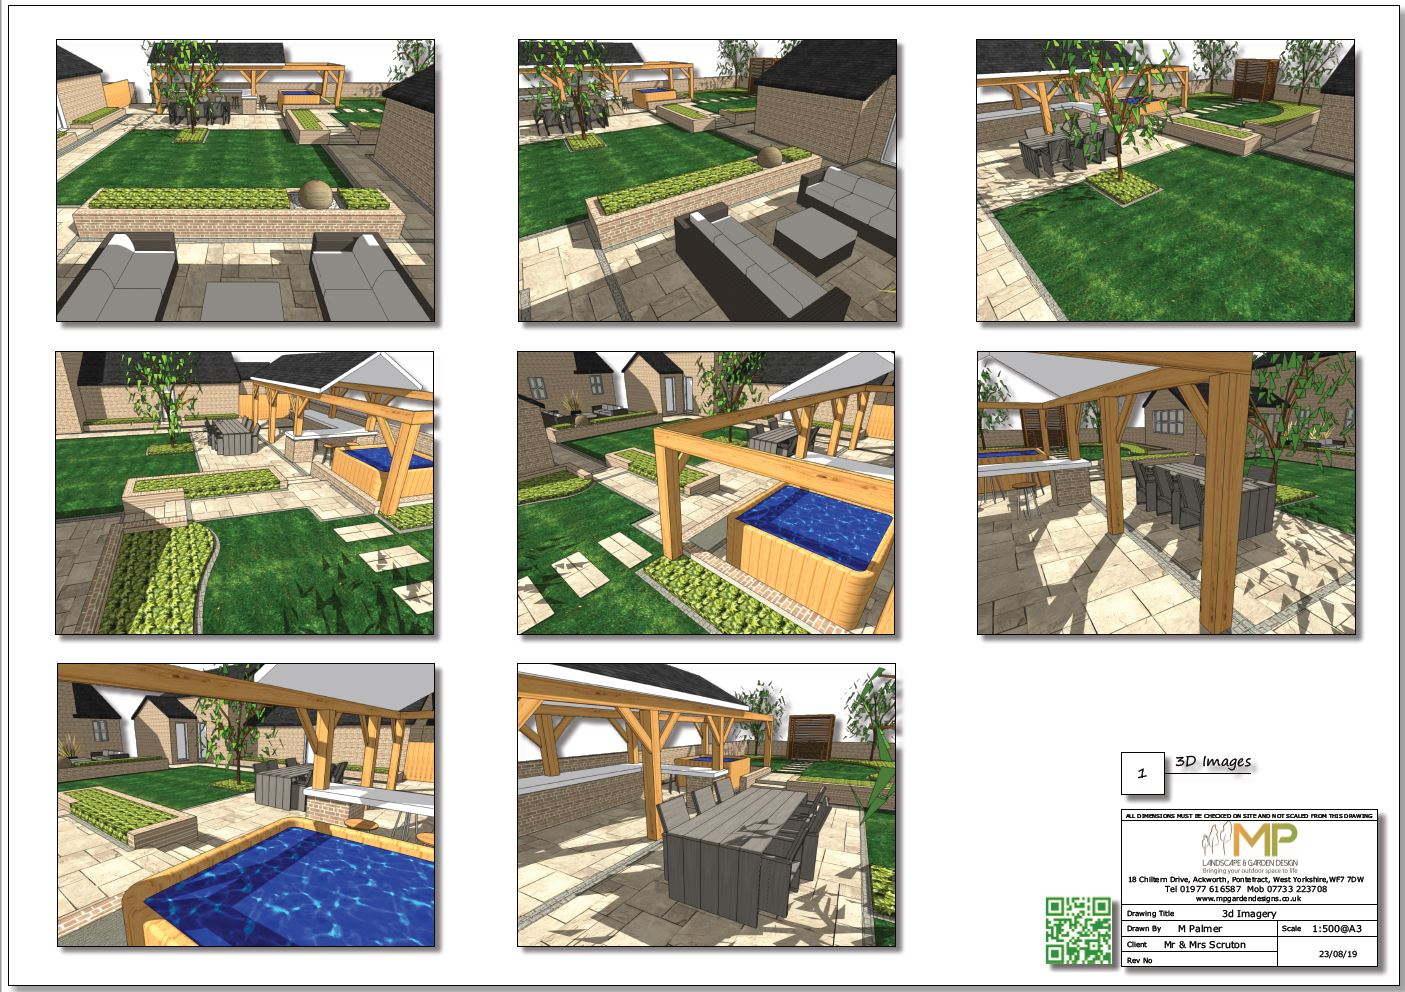 Colour 3D images-1 for a rear garden in Pollington